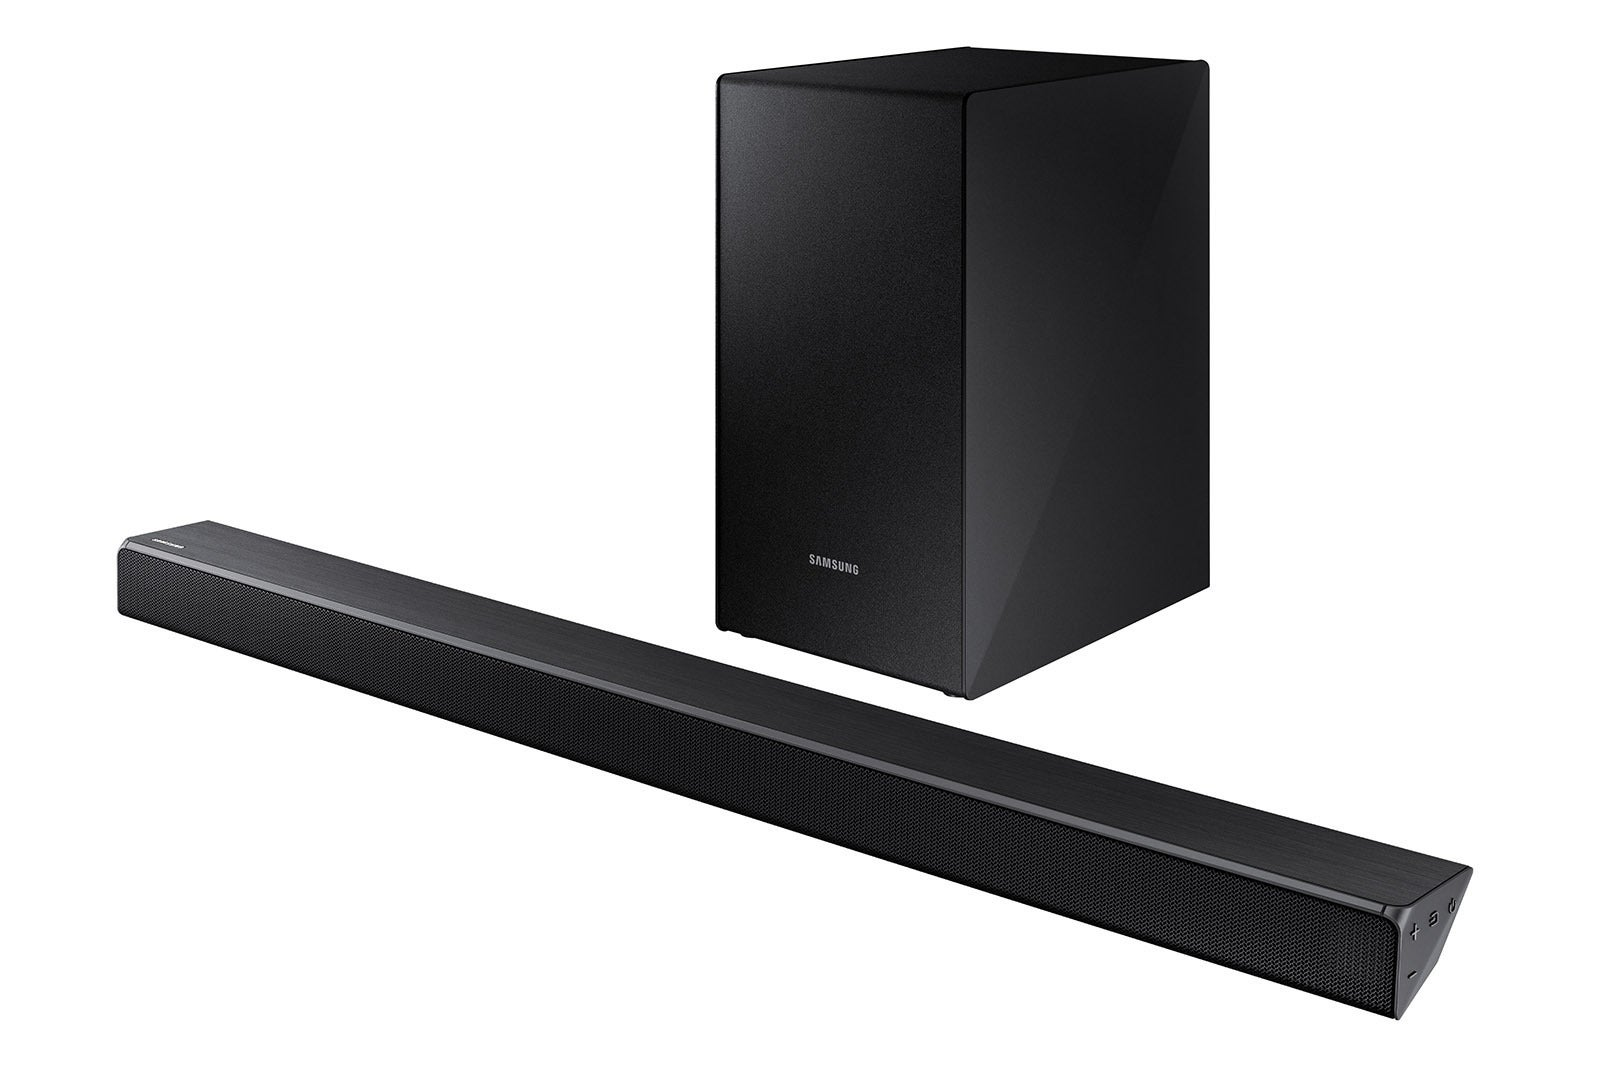 Samsung HW-N450 soundbar review: A solid entry-level offering that's ideal  for Samsung TV owners   TechHive